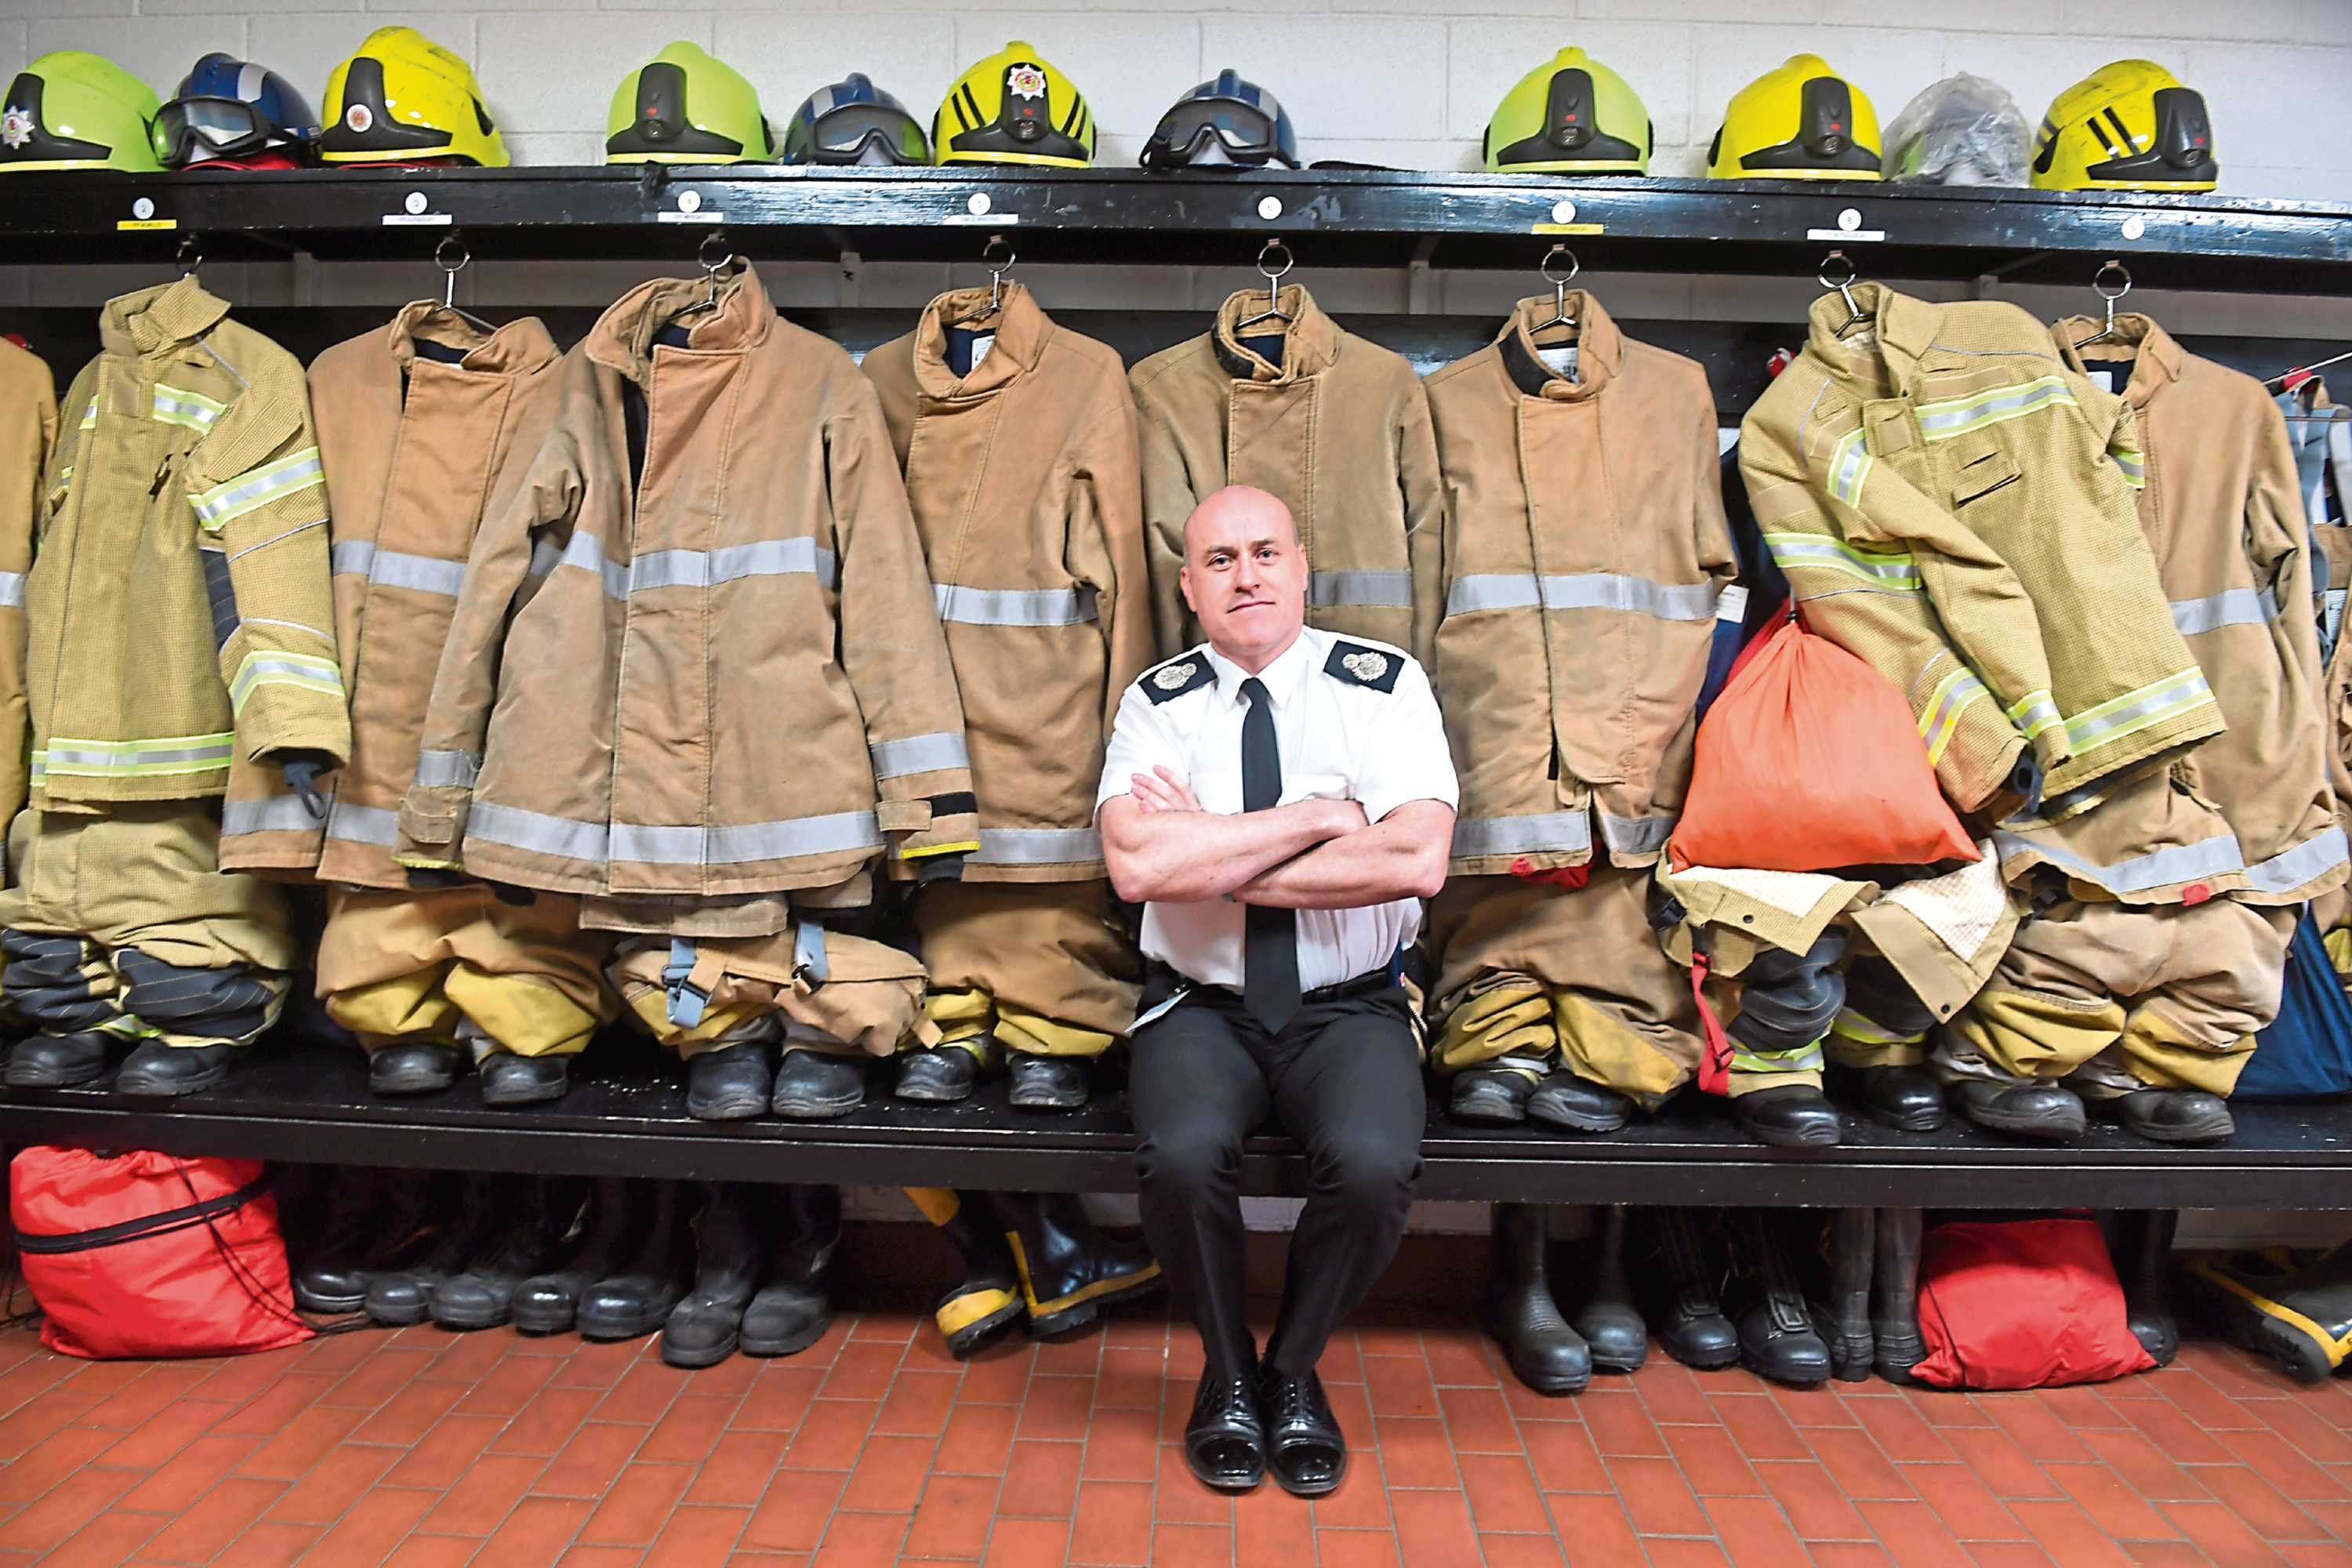 Lewis Ramsay, the director of response and resilience, paid tribute to the work of the fire crews